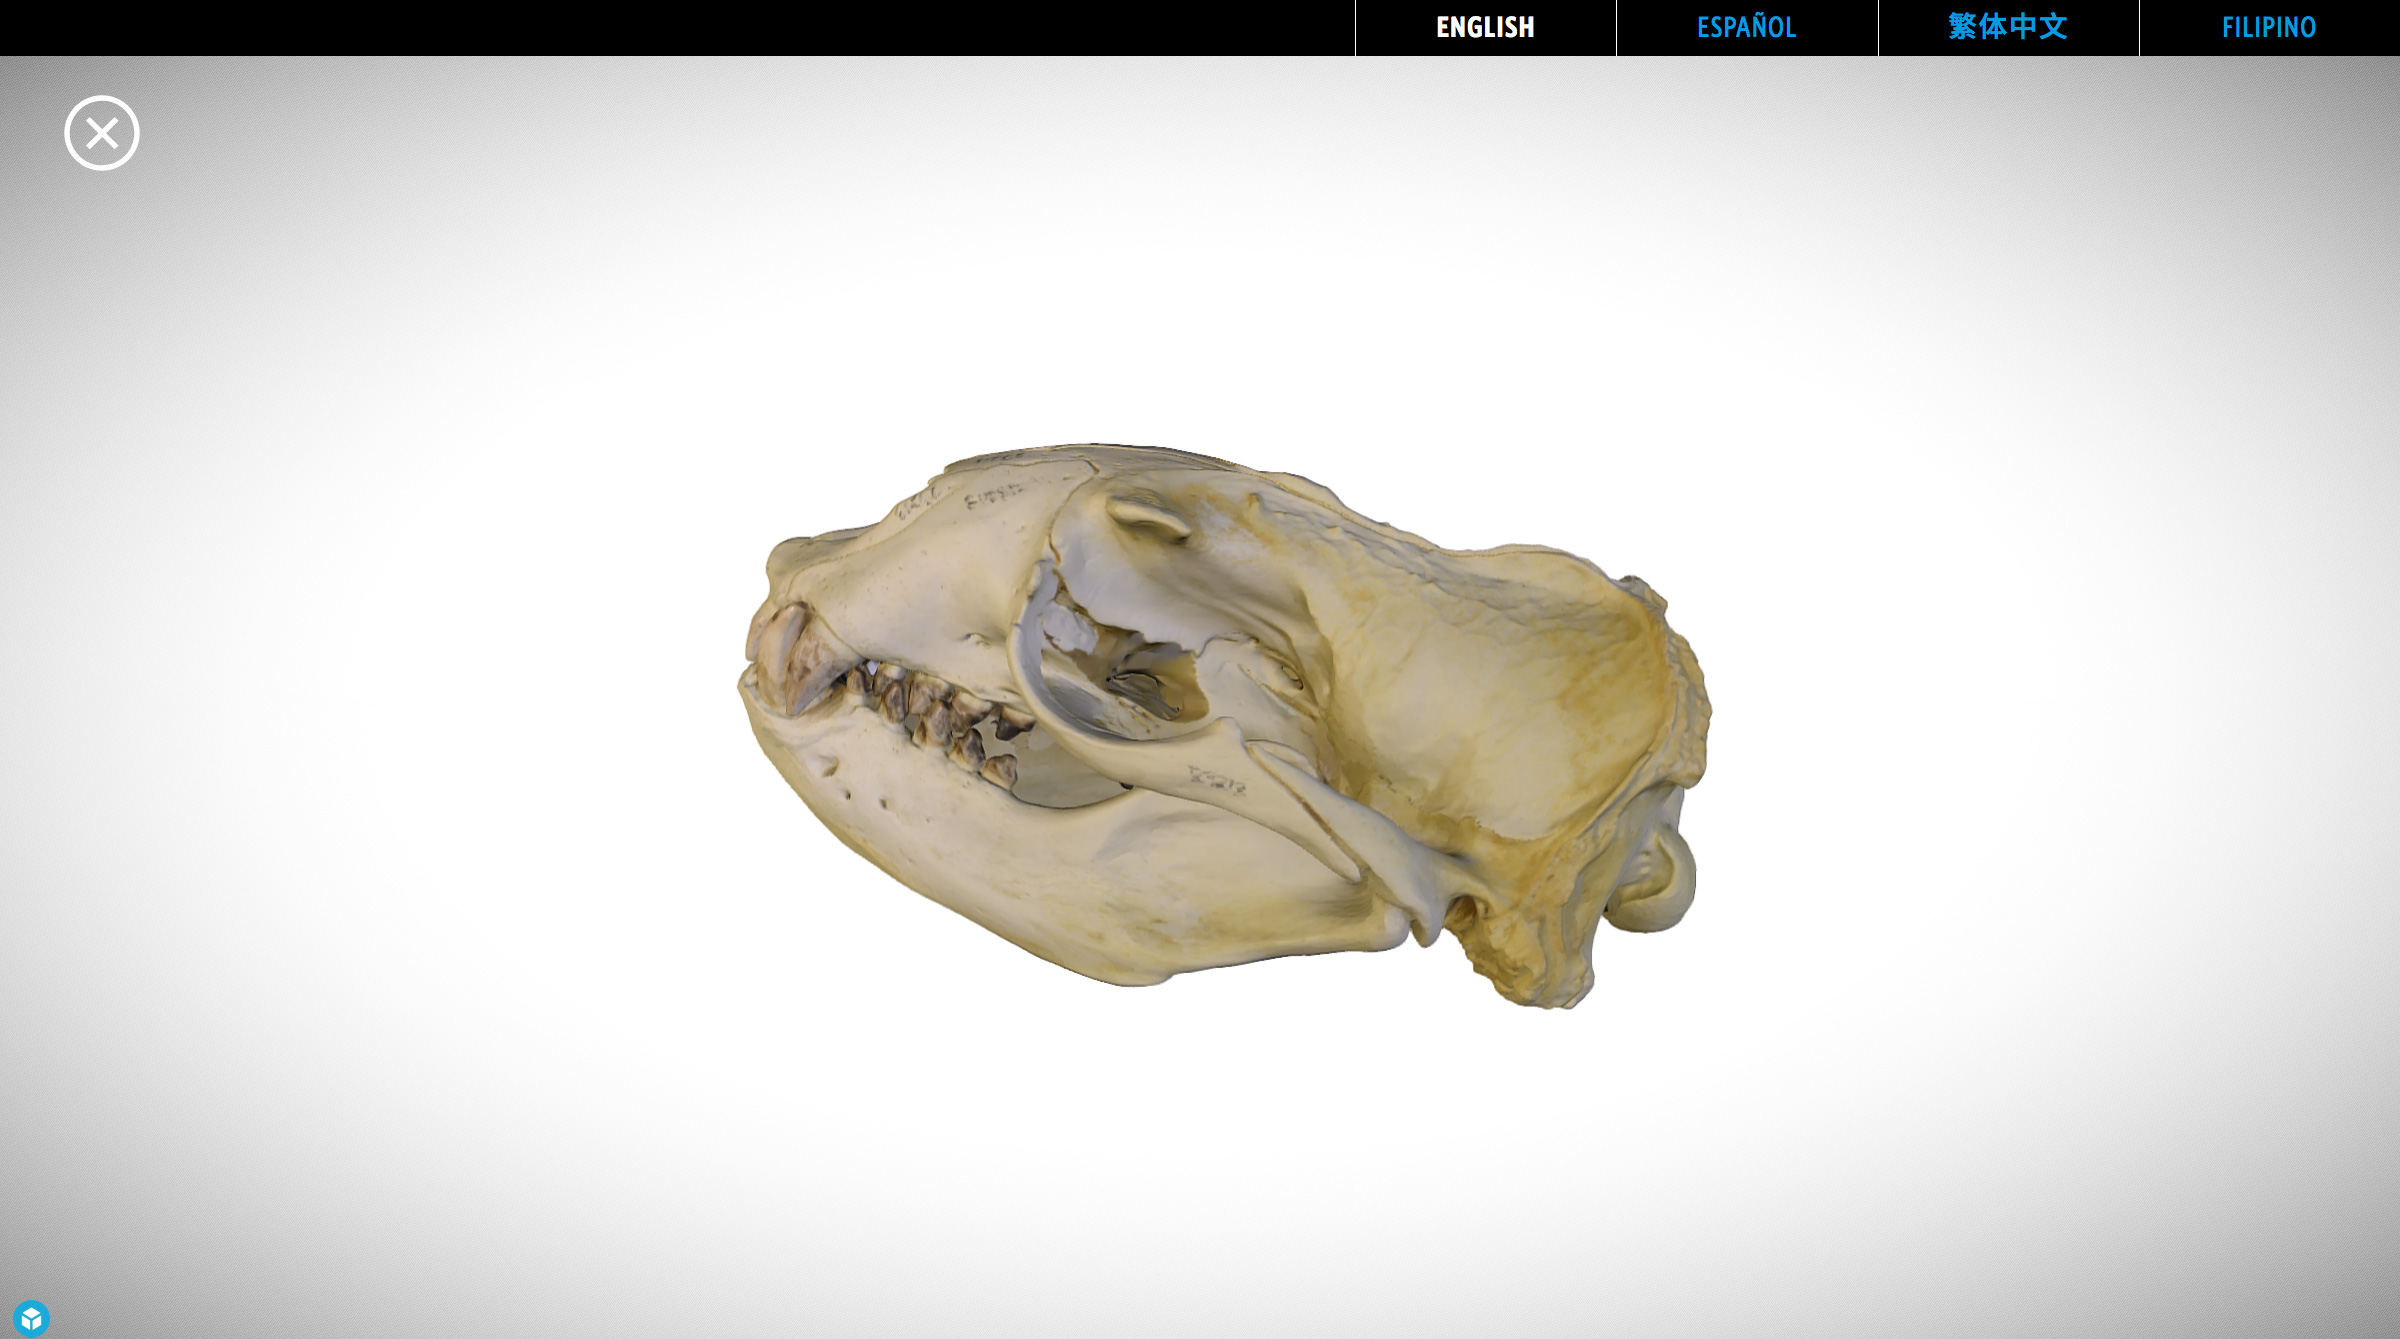 Visitors can explore a 3D rendered skull by spinning model and pinch to zoom